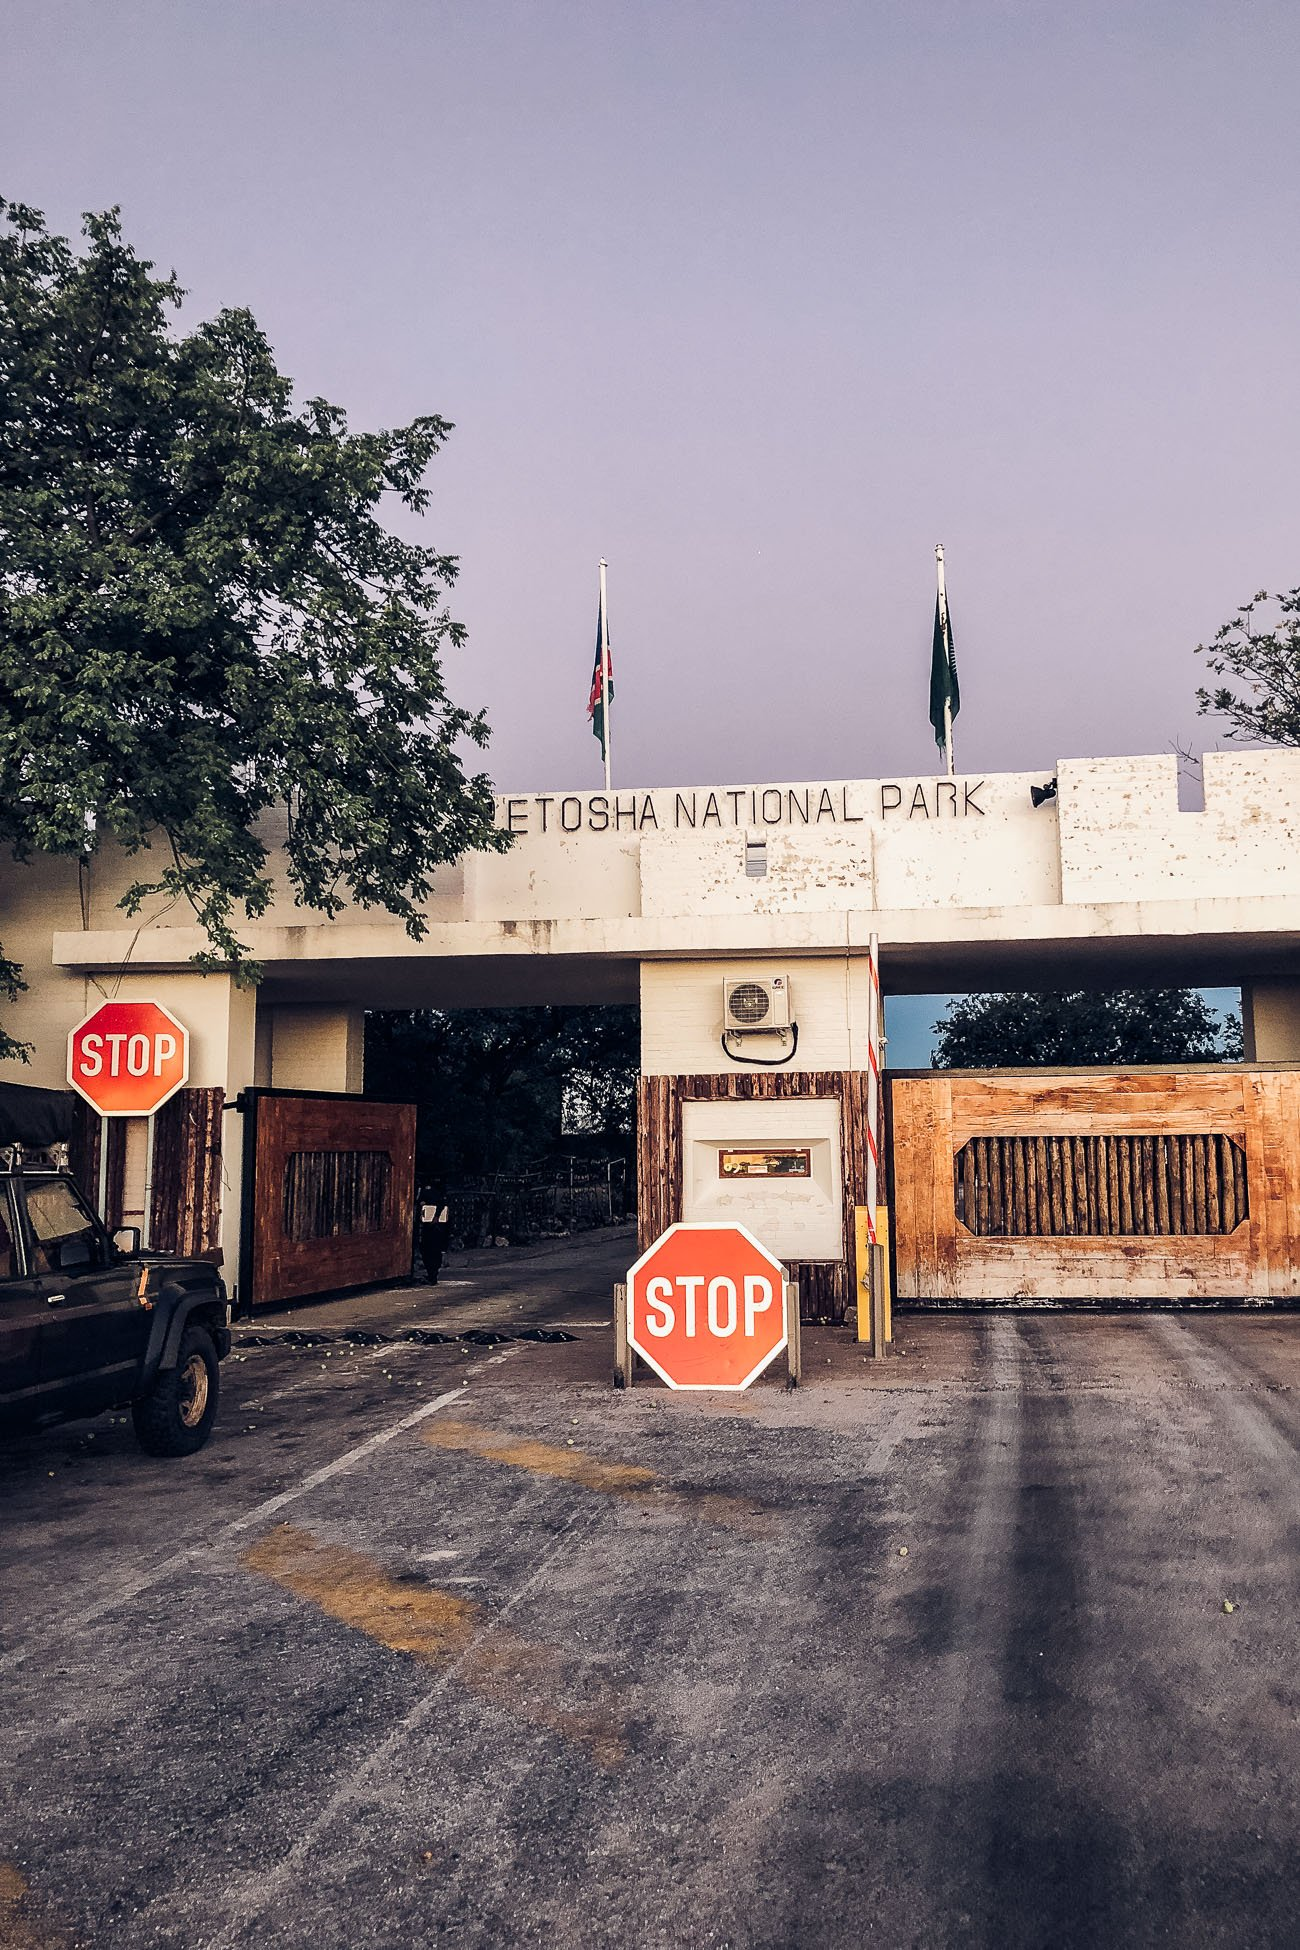 Gate to Etosha National Park